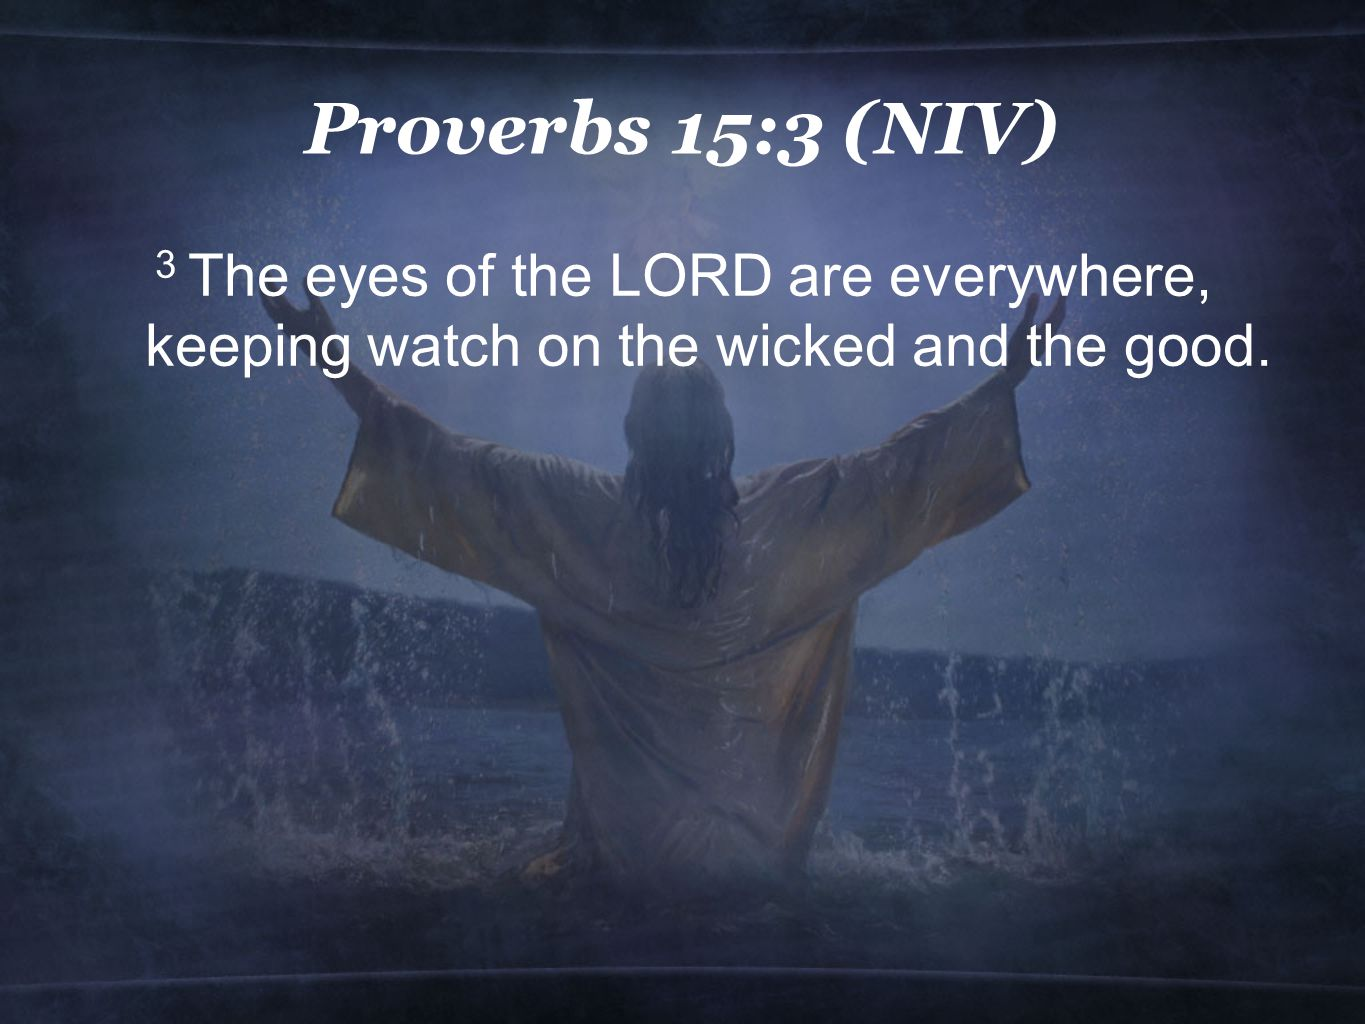 Proverbs 15:3 (NIV) 3 The eyes of the LORD are everywhere, keeping watch on the wicked and the good.